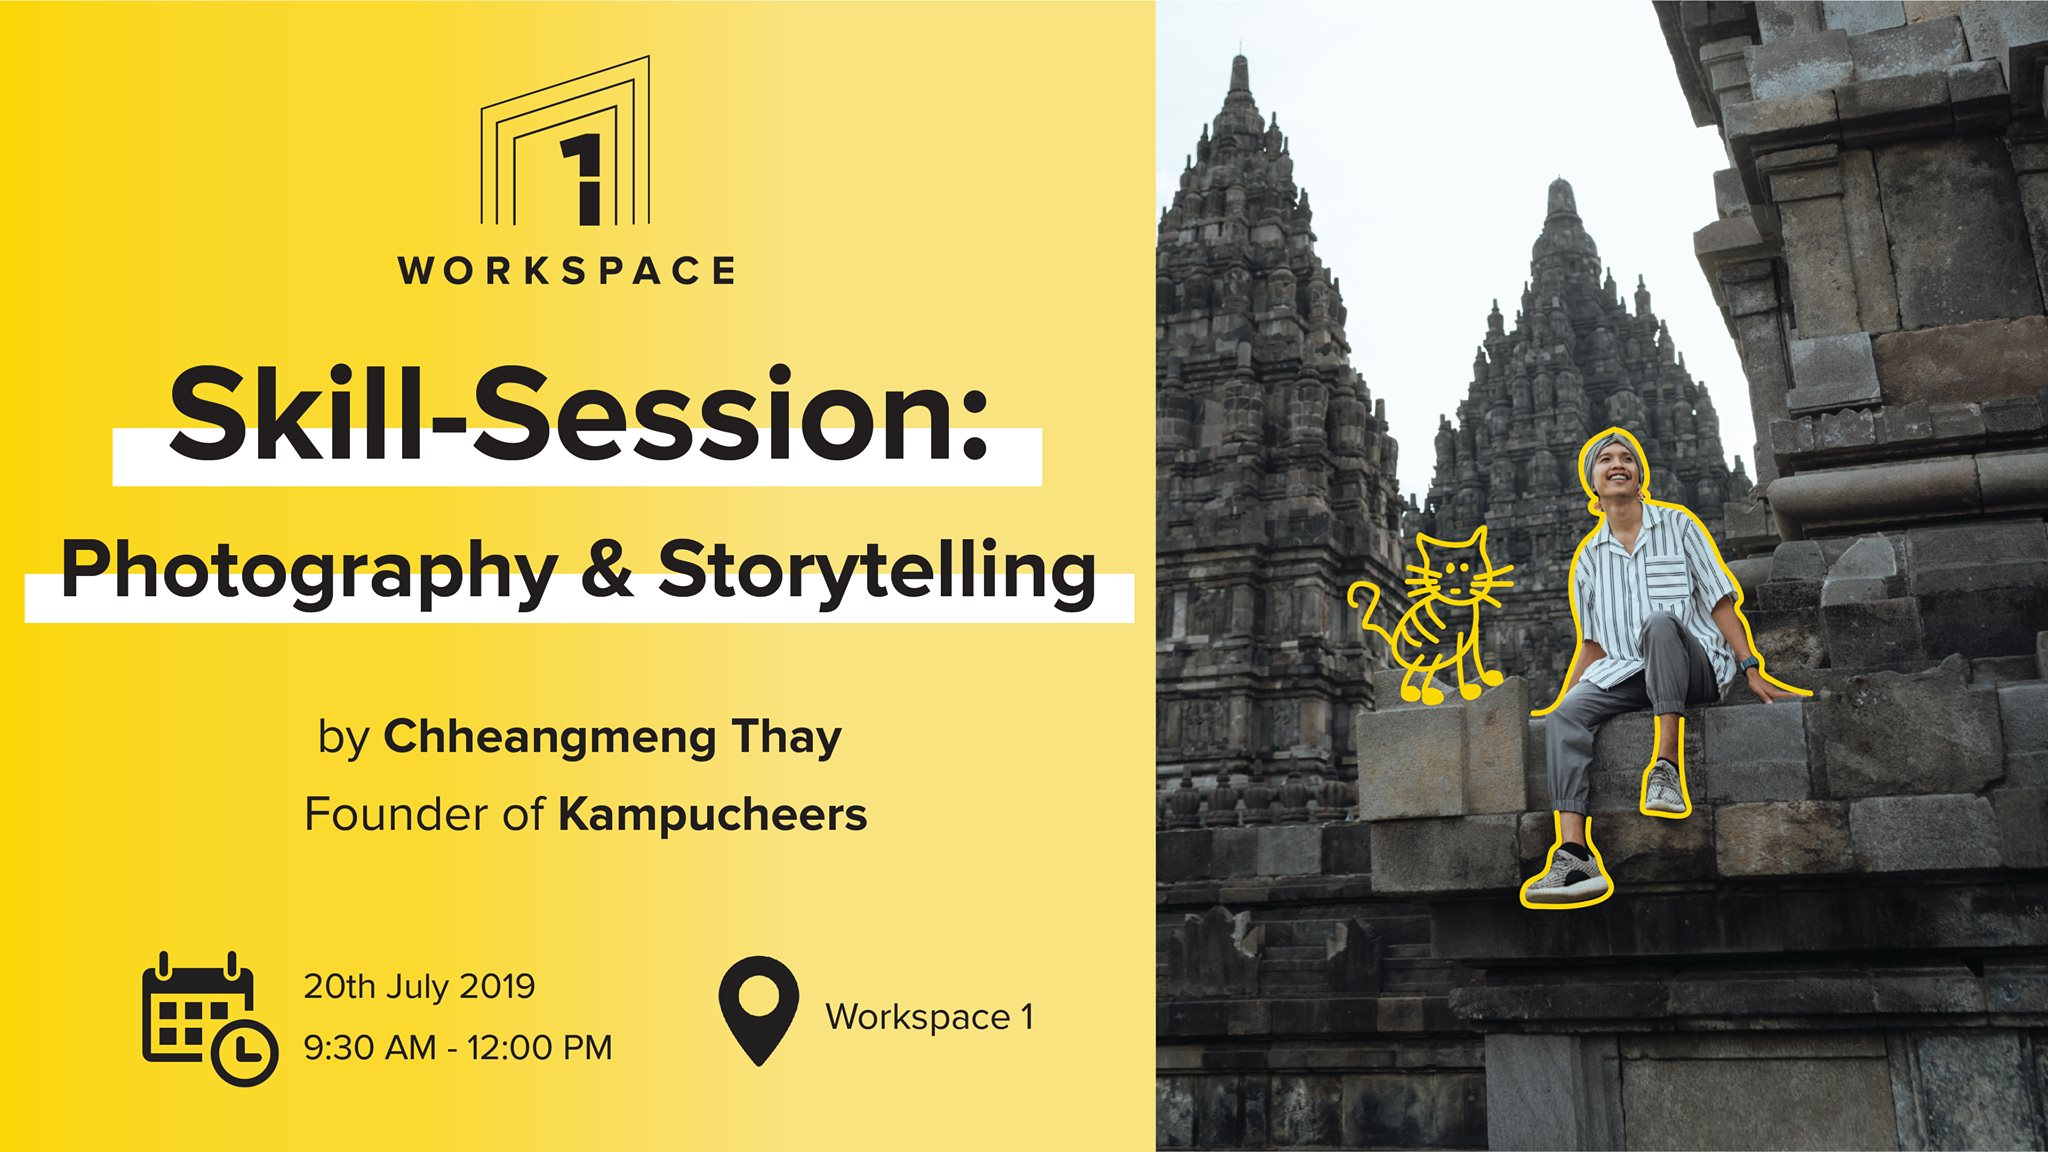 Skill-Session: Photography & Storytelling